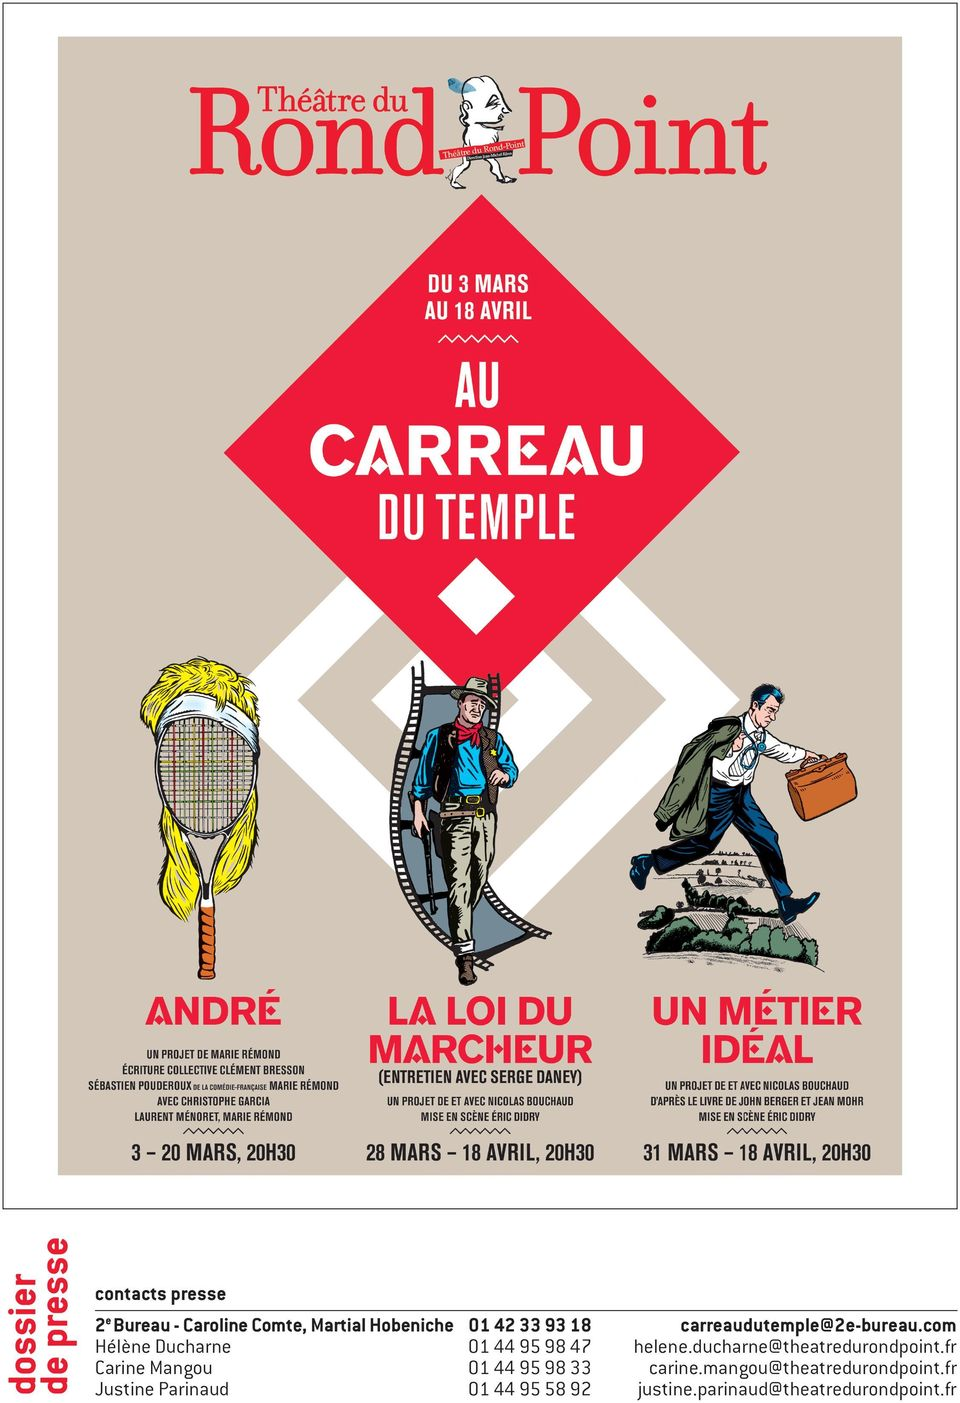 95 98 33 01 44 95 58 92 carreaudutemple@2e-bureau.com helene.